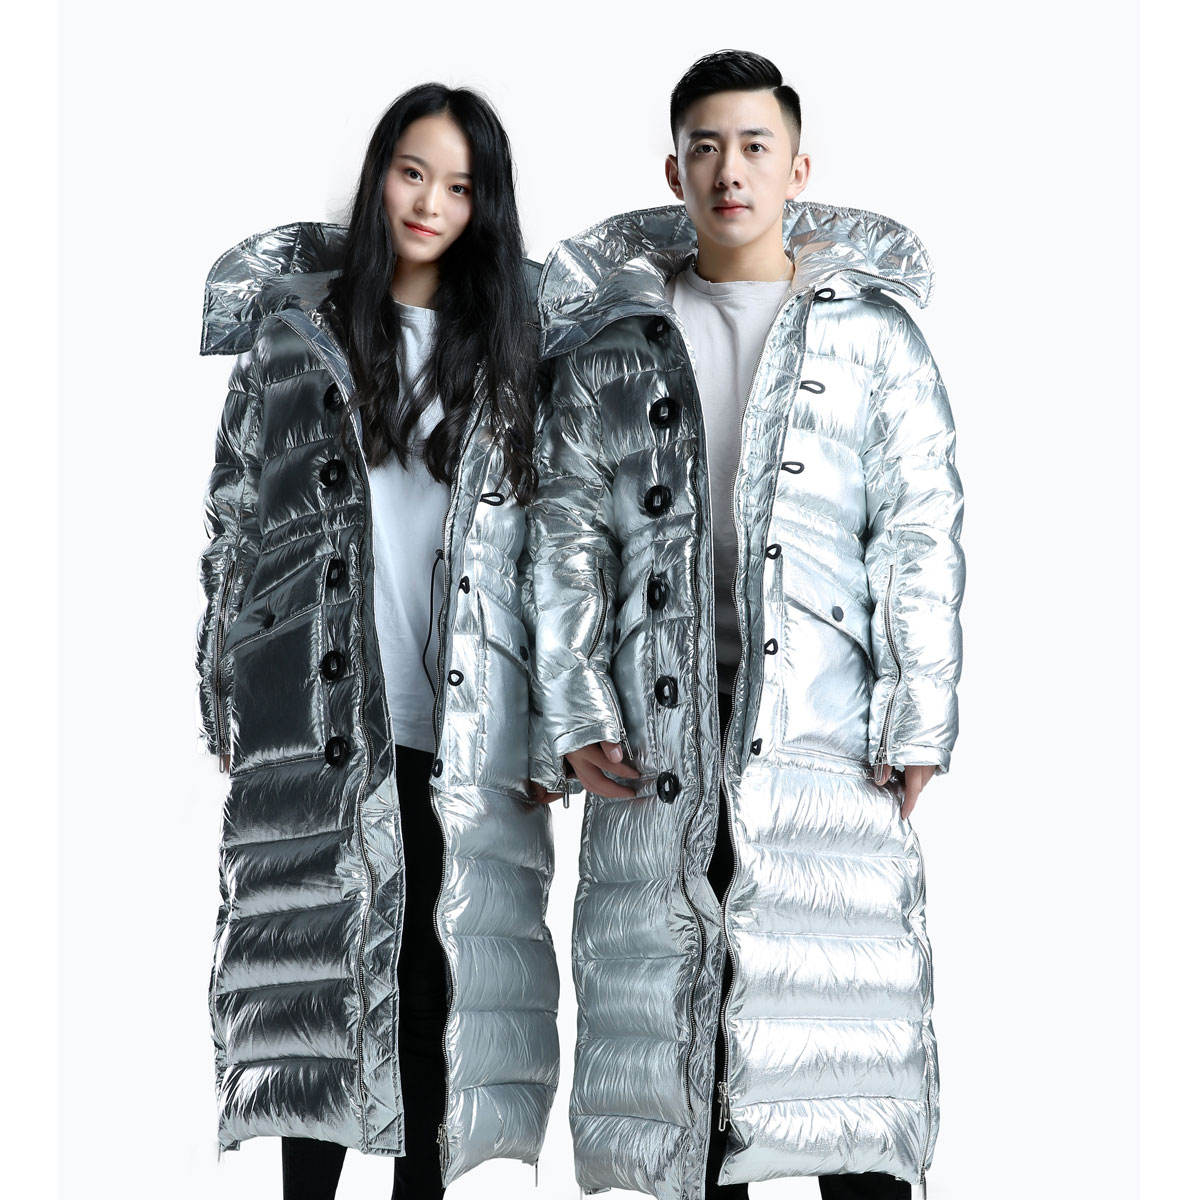 Hengdian moon e Luo Yunxi star same new big button iron gray silver long fashion lovers can be customized